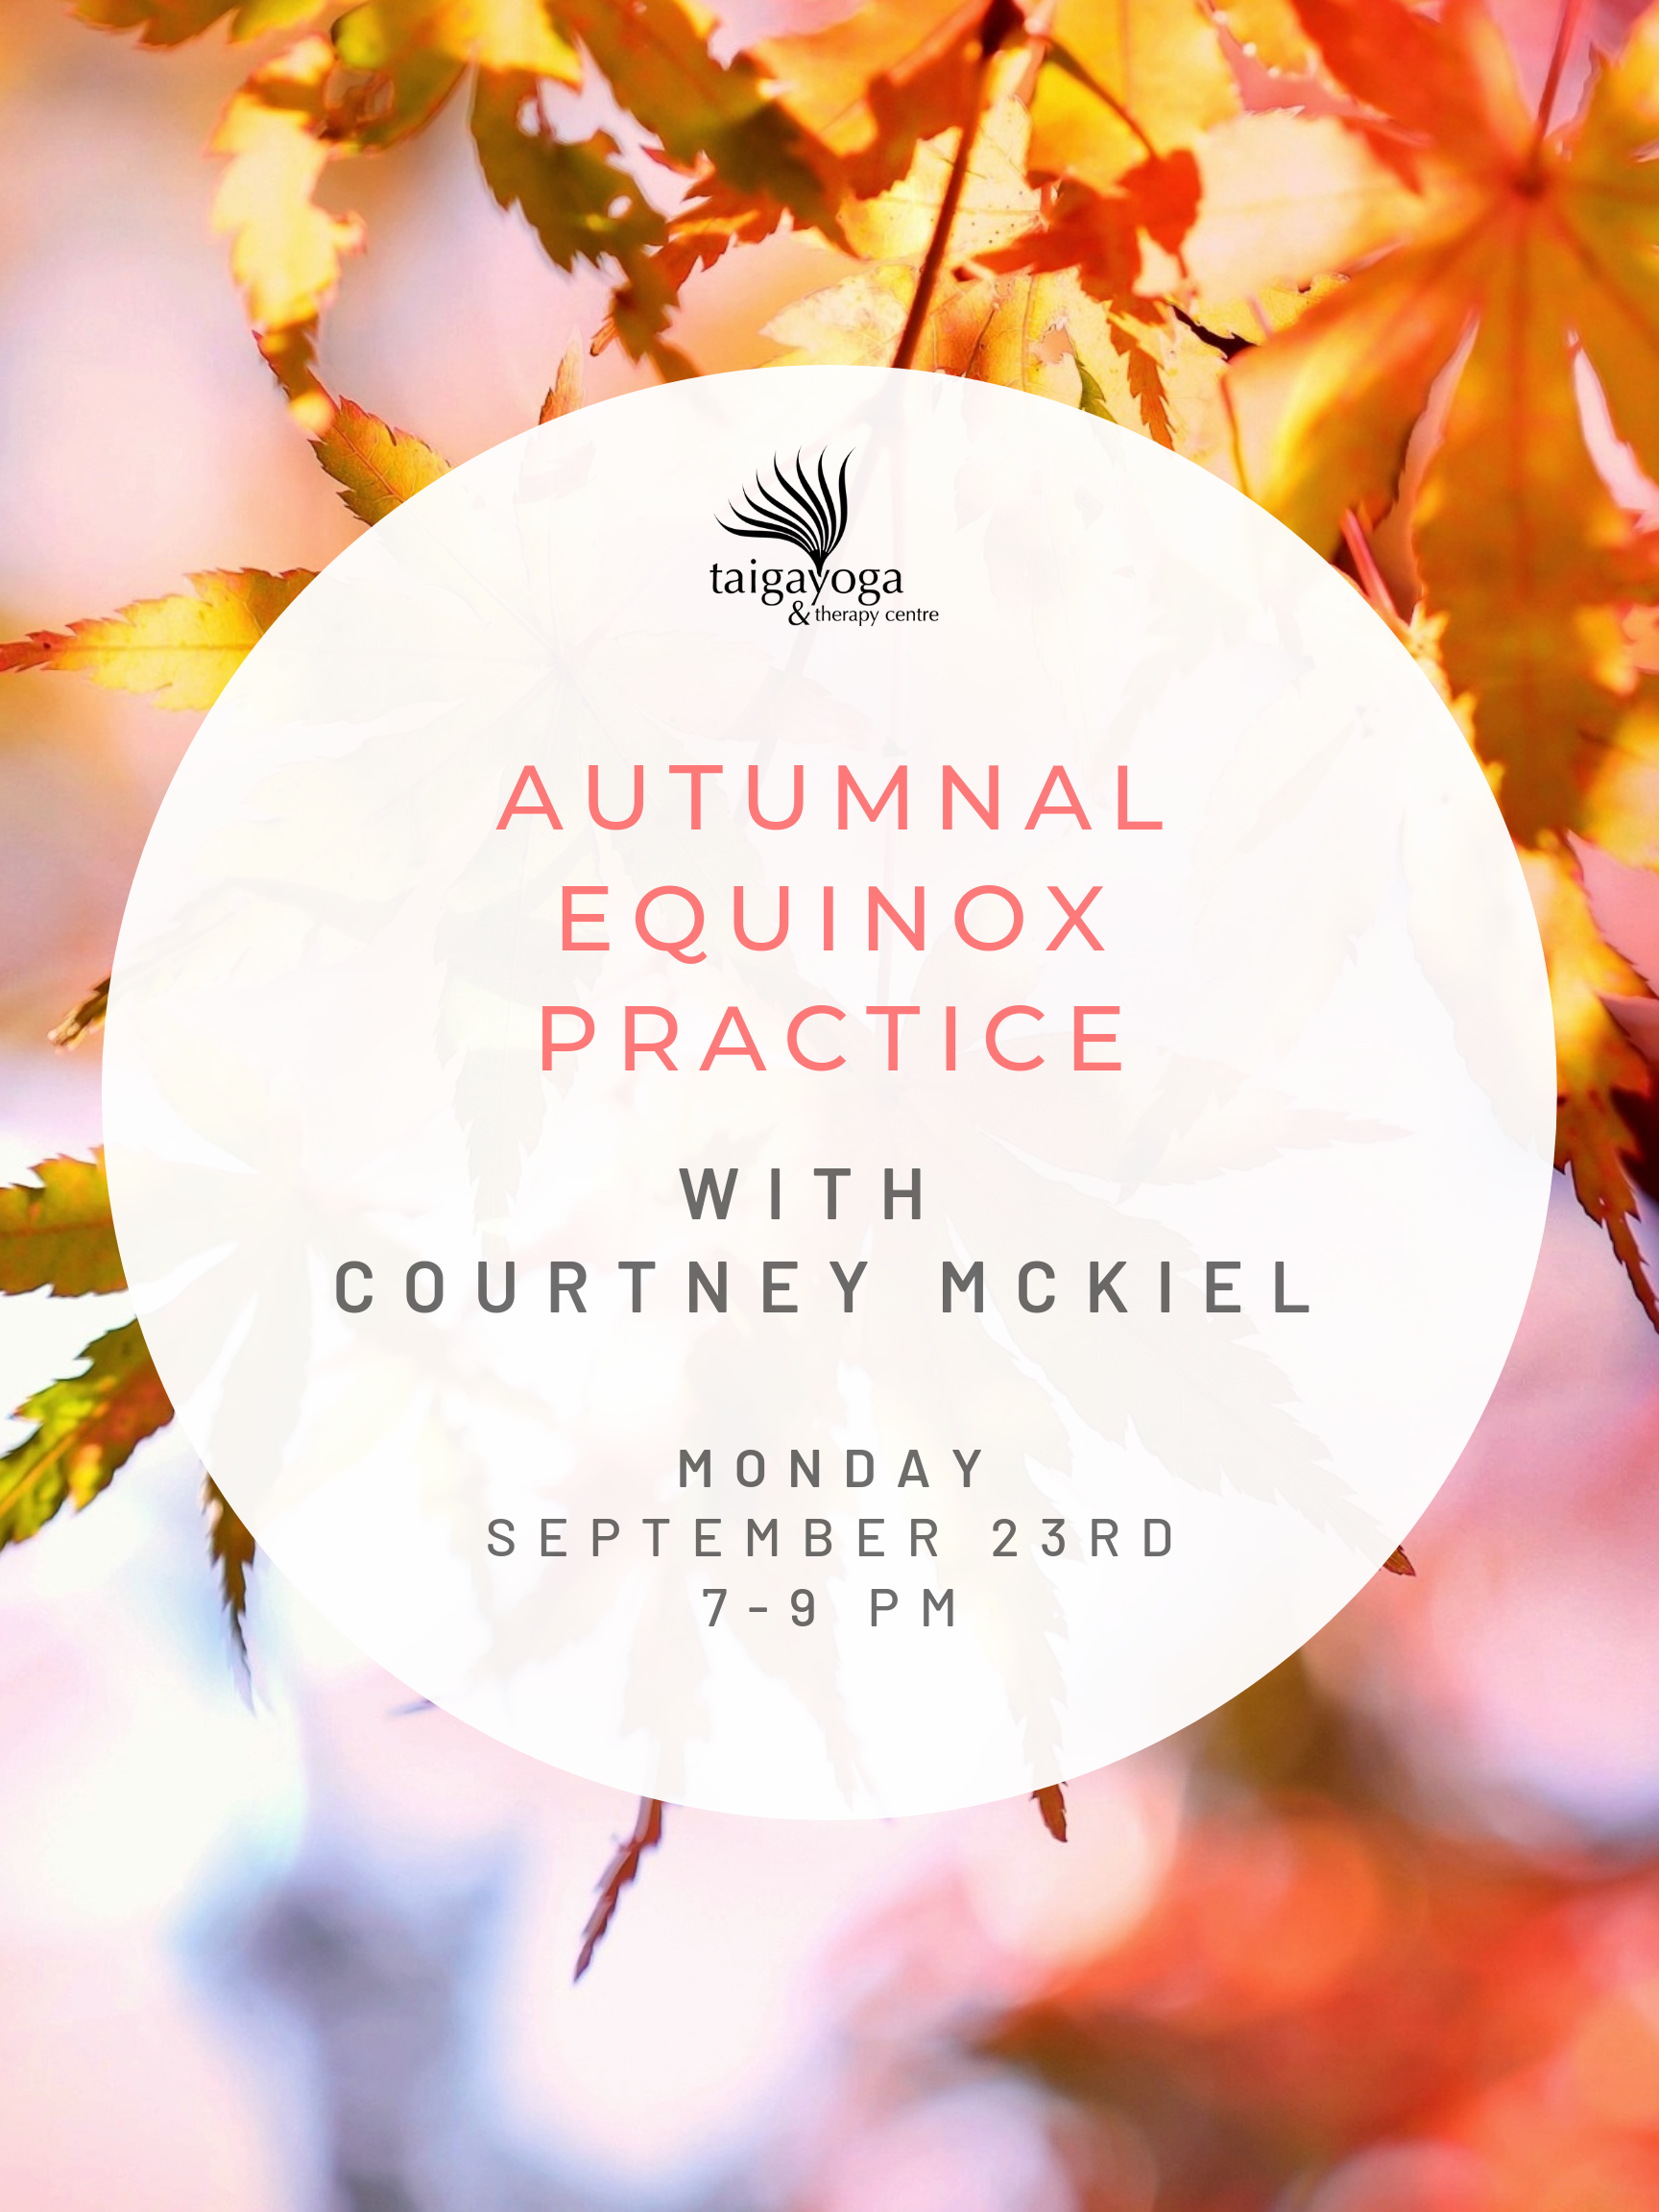 The autumnal equinox signifies the transition from lightness to darkness - an ideal time for reflection and introspection. Meet your authentic self on the mat for a grounding Yin practice combined with personal ceremony recognizing the shift in seasons and your Self.    Please bring a notebook/journal, pen/pencil and votive candle.    Monday, September 23rd  7-9 PM  $45/student